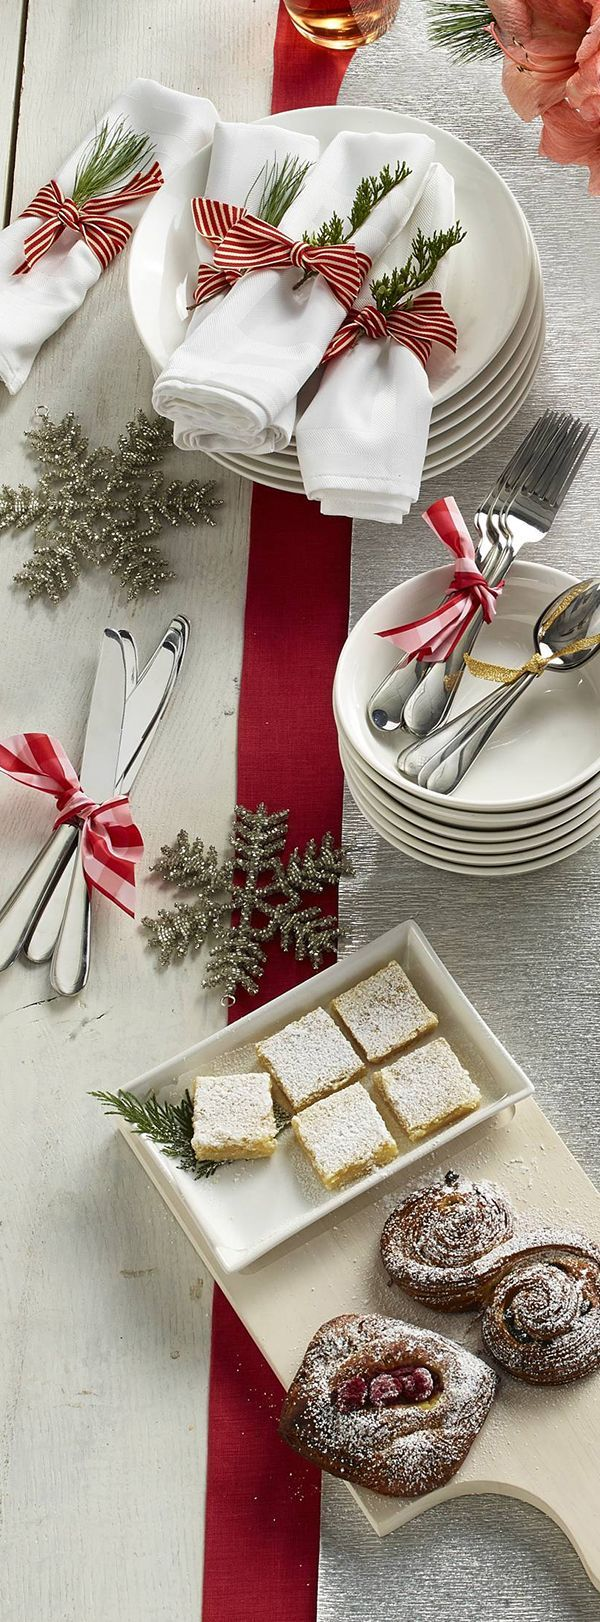 Table settings · Martha Stewart\u0027s entertaining essentials will bring major style to each of your holiday celebrations \u2014 shop : martha stewart christmas table settings - pezcame.com